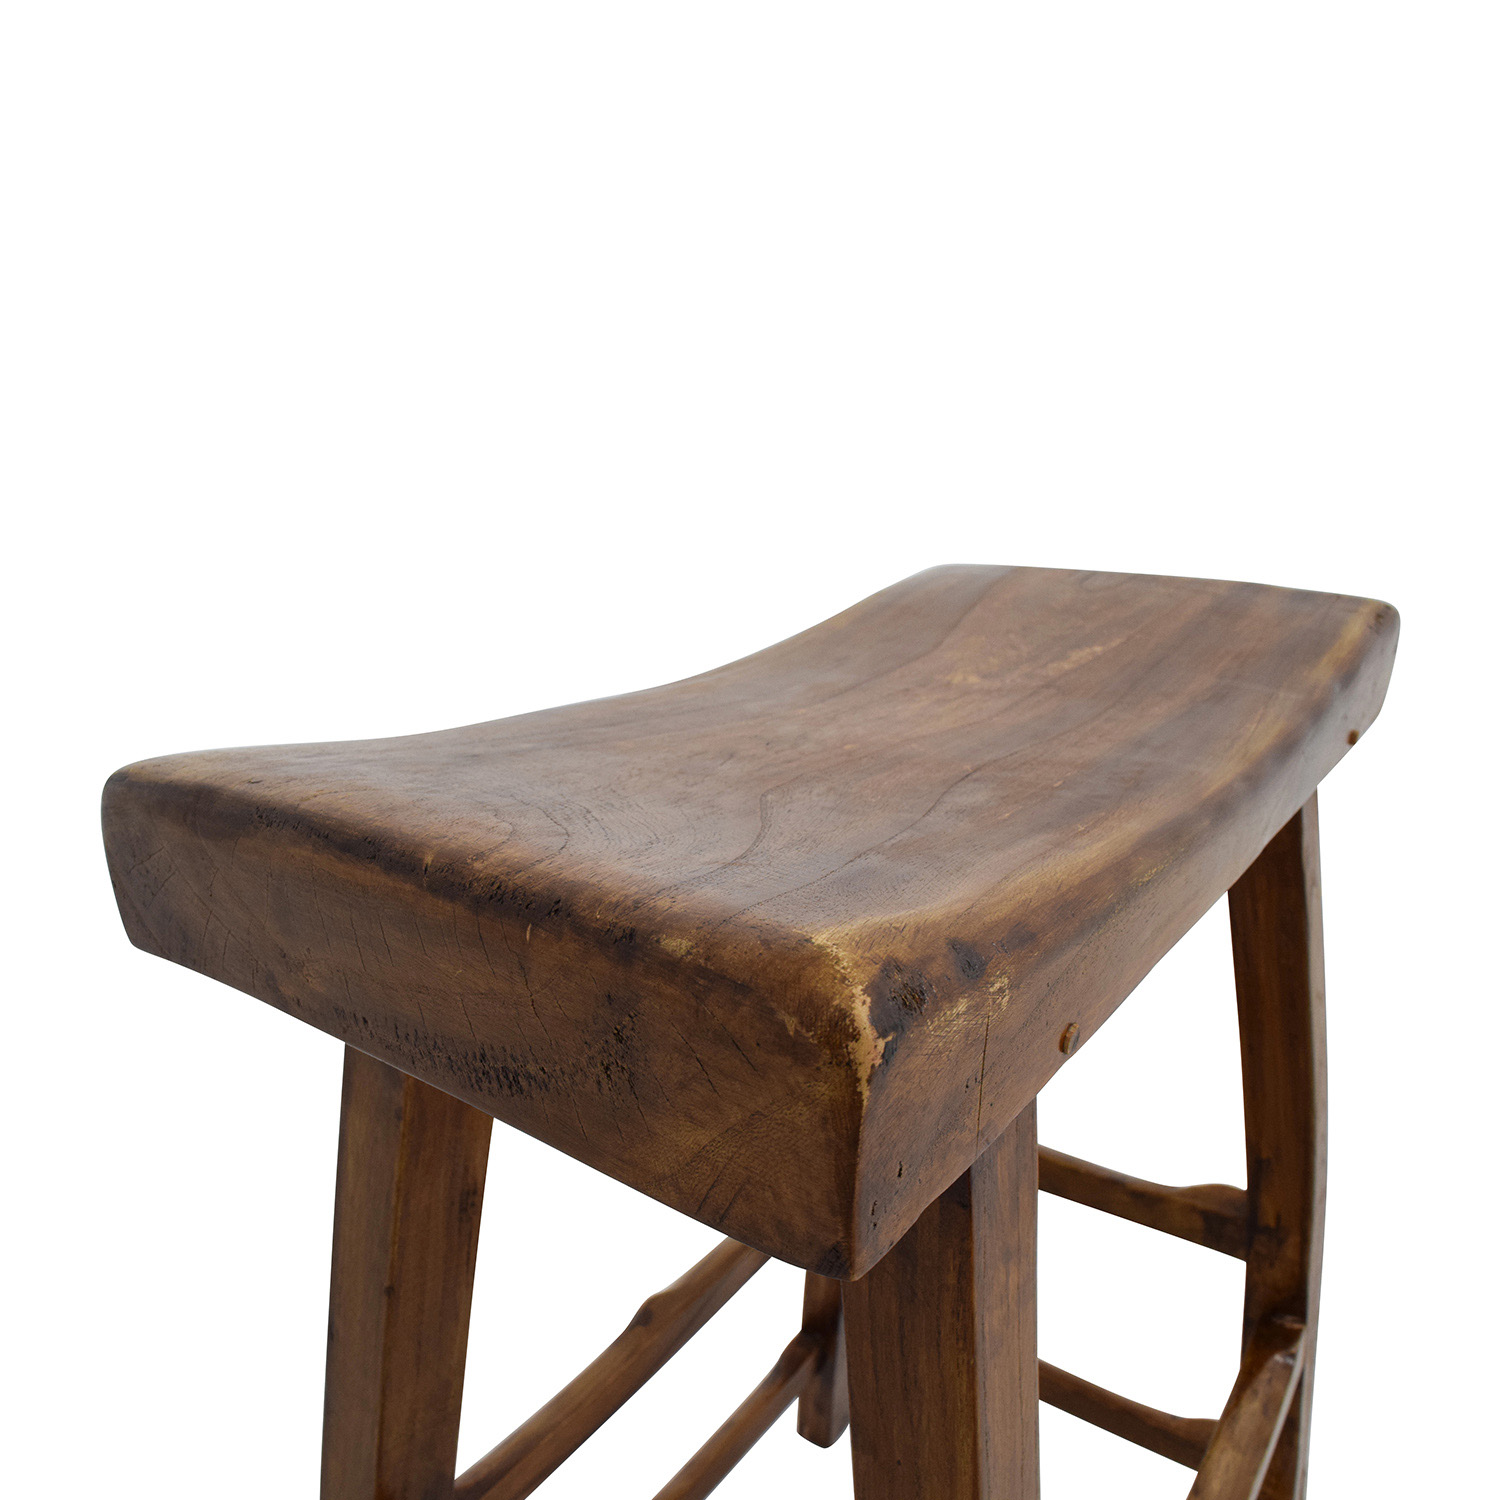 Incredible 55 Off Rustic Wood Saddle Seat Counter Stool Chairs Pdpeps Interior Chair Design Pdpepsorg